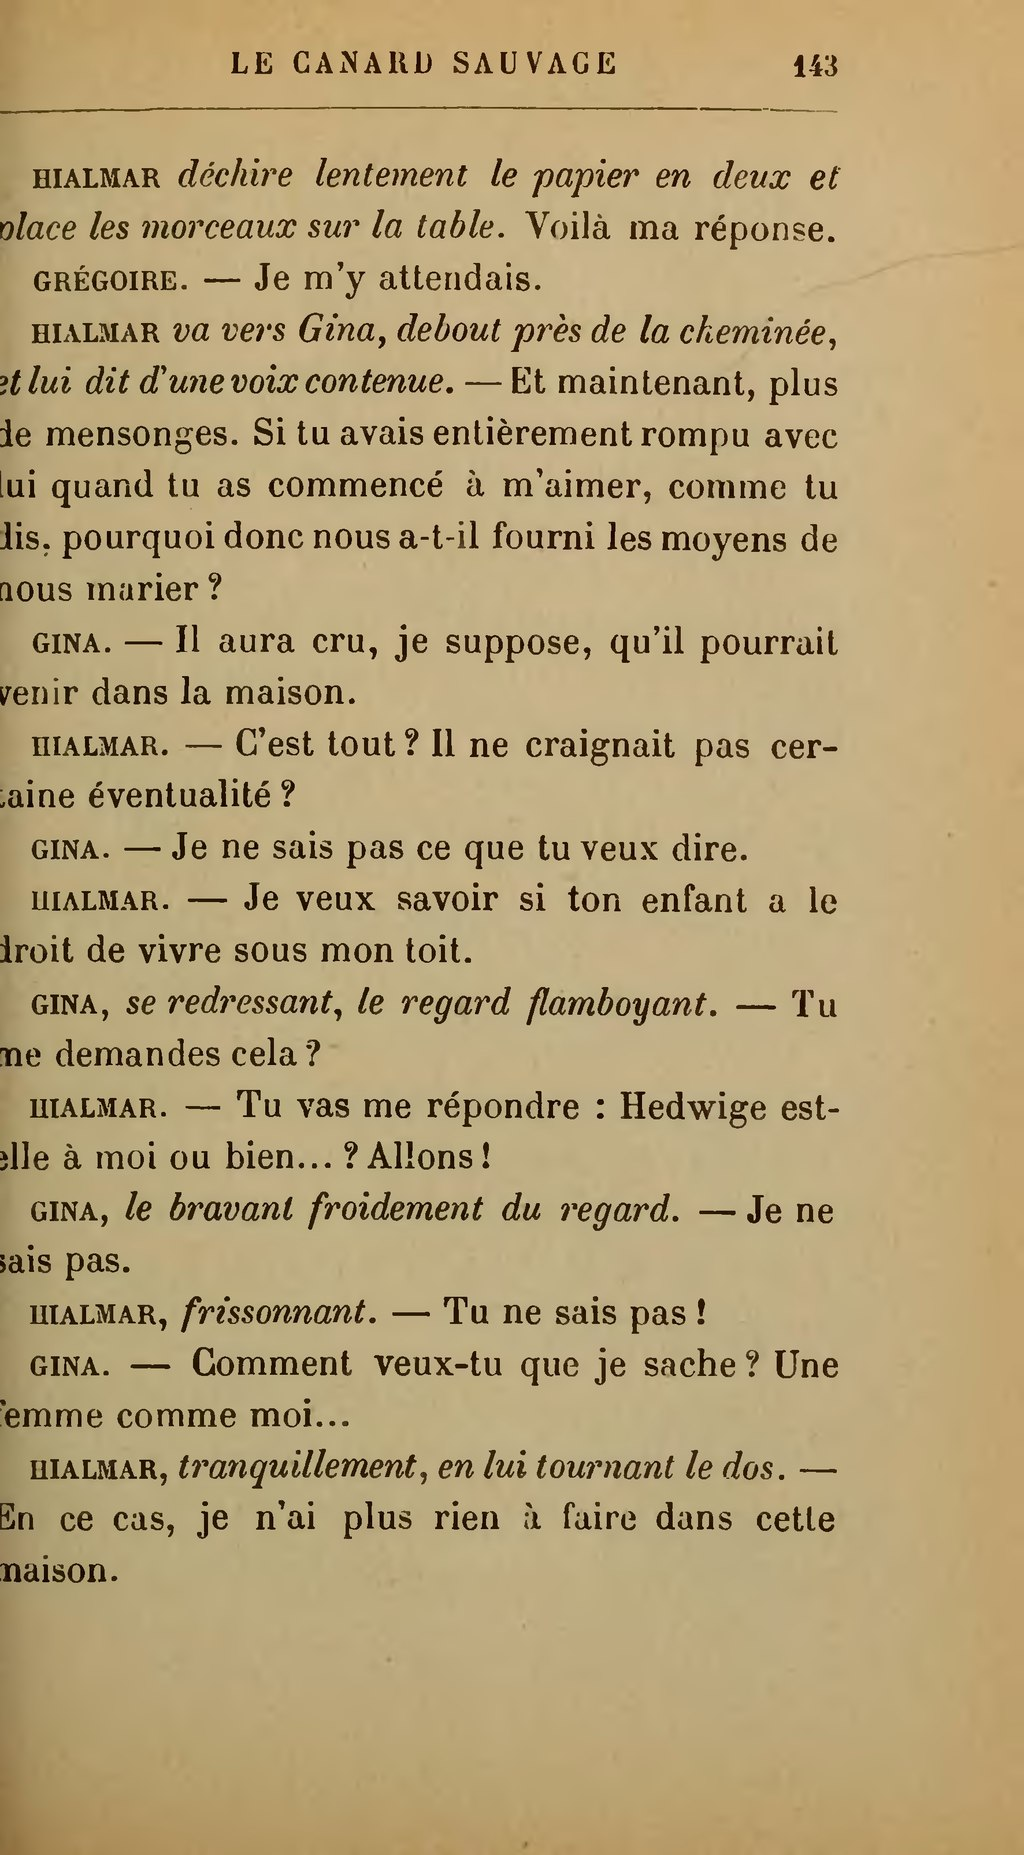 Page ibsen le canard sauvage rosmersholm trad prozor wikisource - Comment cuisiner le canard sauvage ...